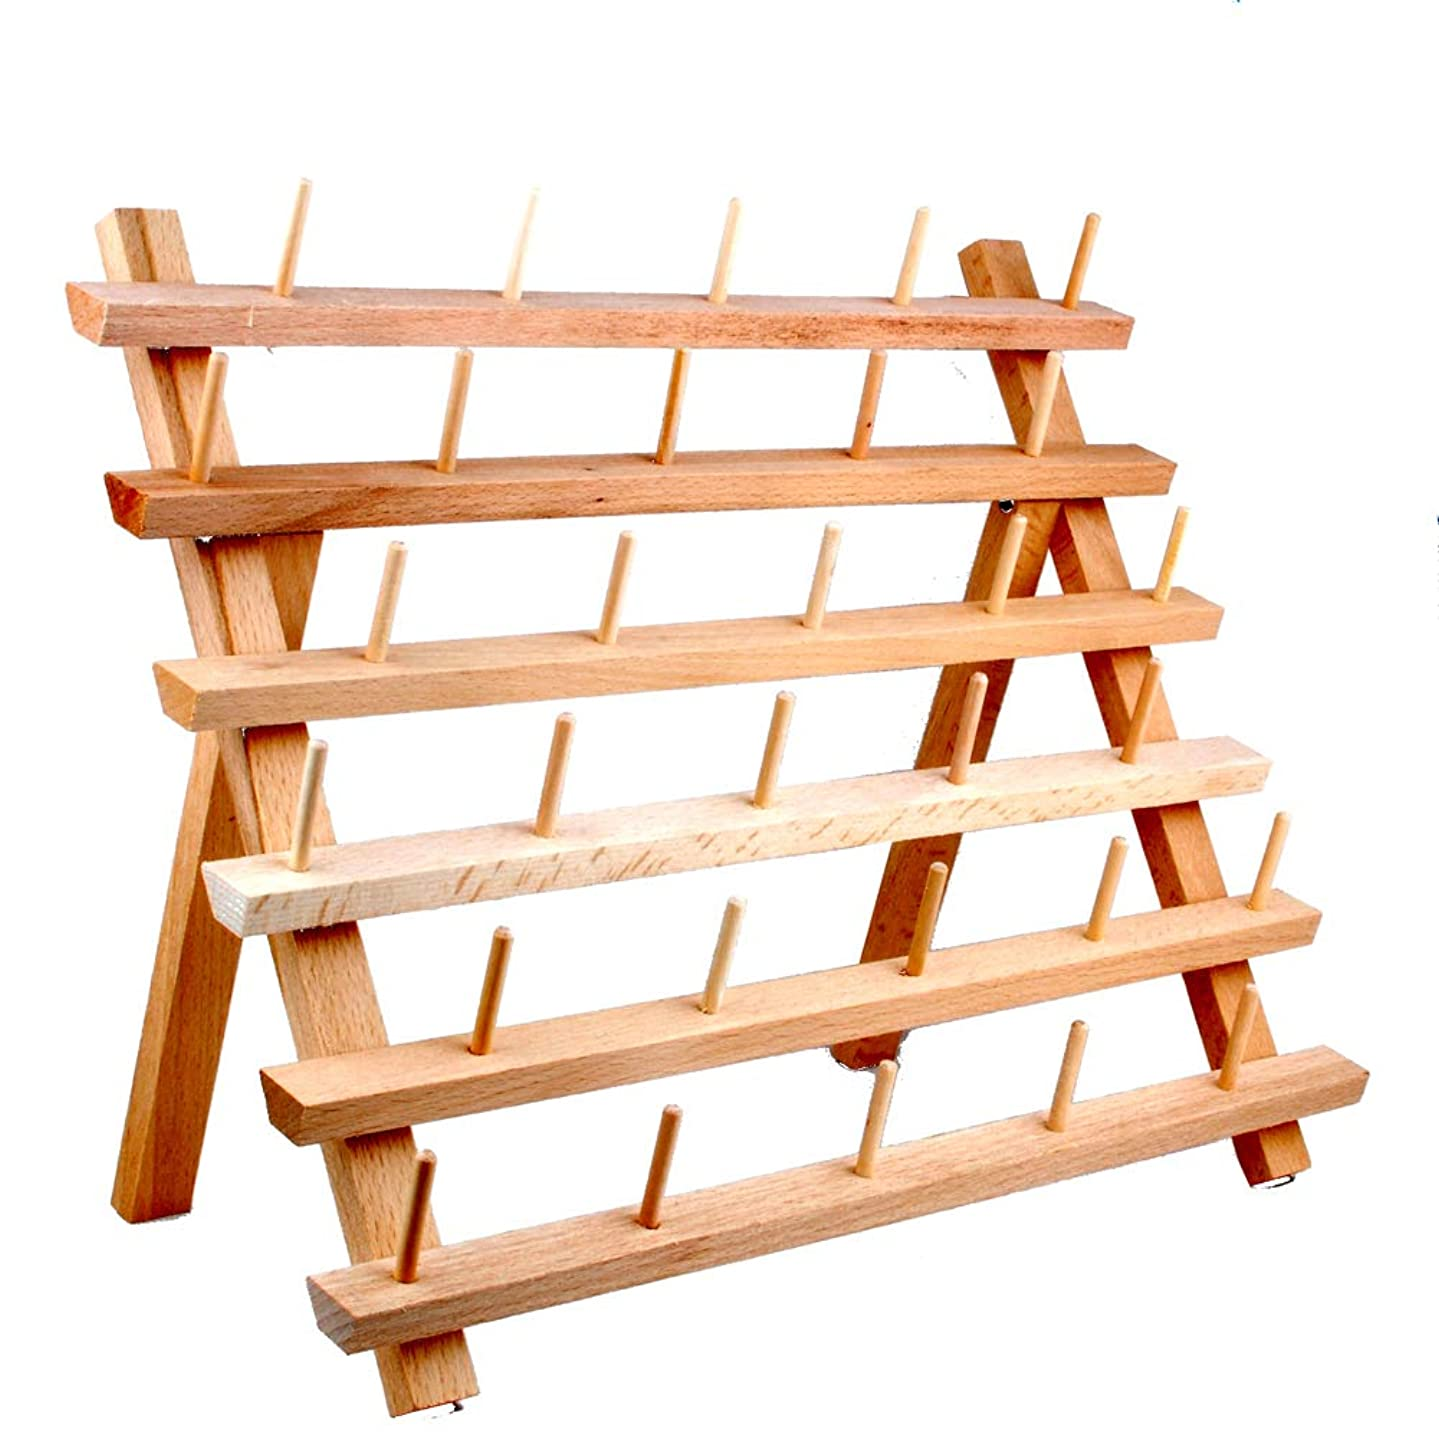 NW Wooden Thread Holder Sewing and Embroidery Thread Rack and Organizer Thread Rack for Sewing (30-Spool)